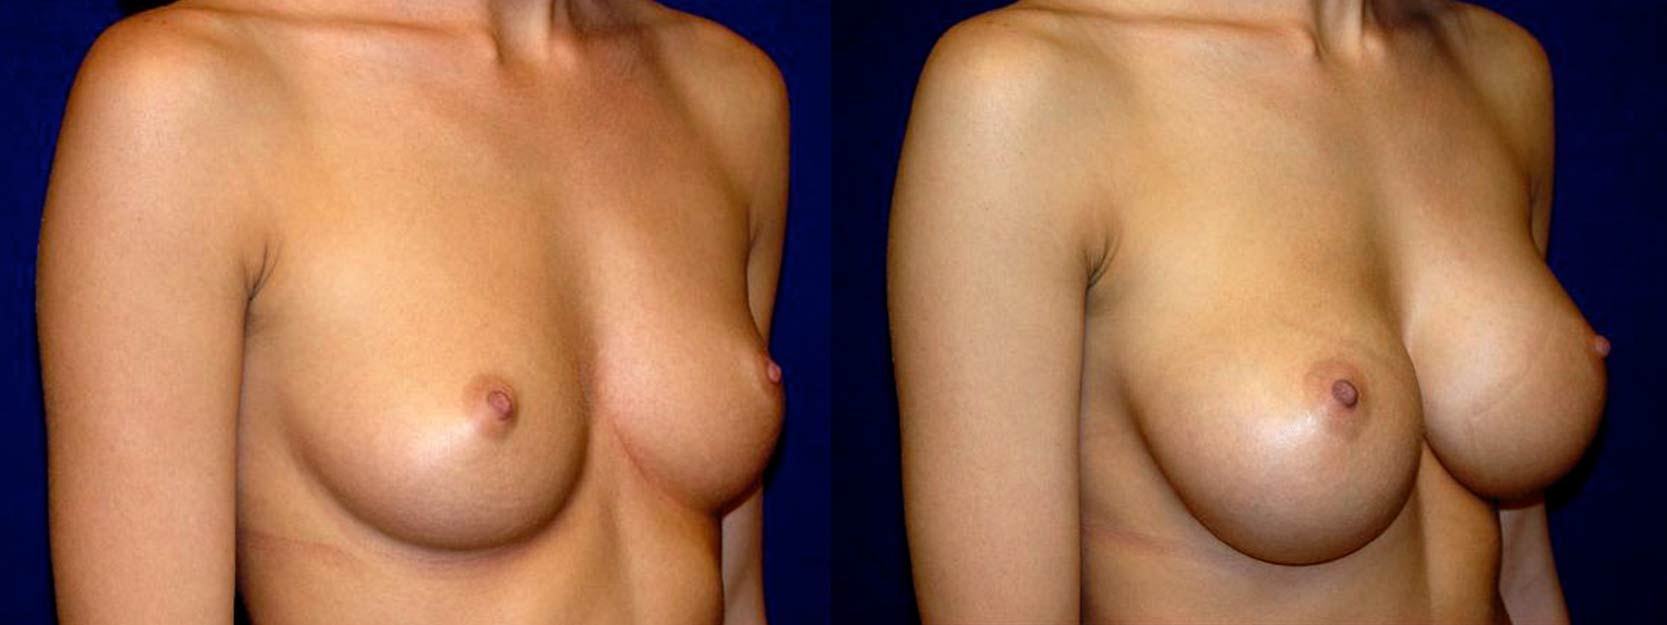 Right 3/4 View - Breast Augmentation - Saline Implants